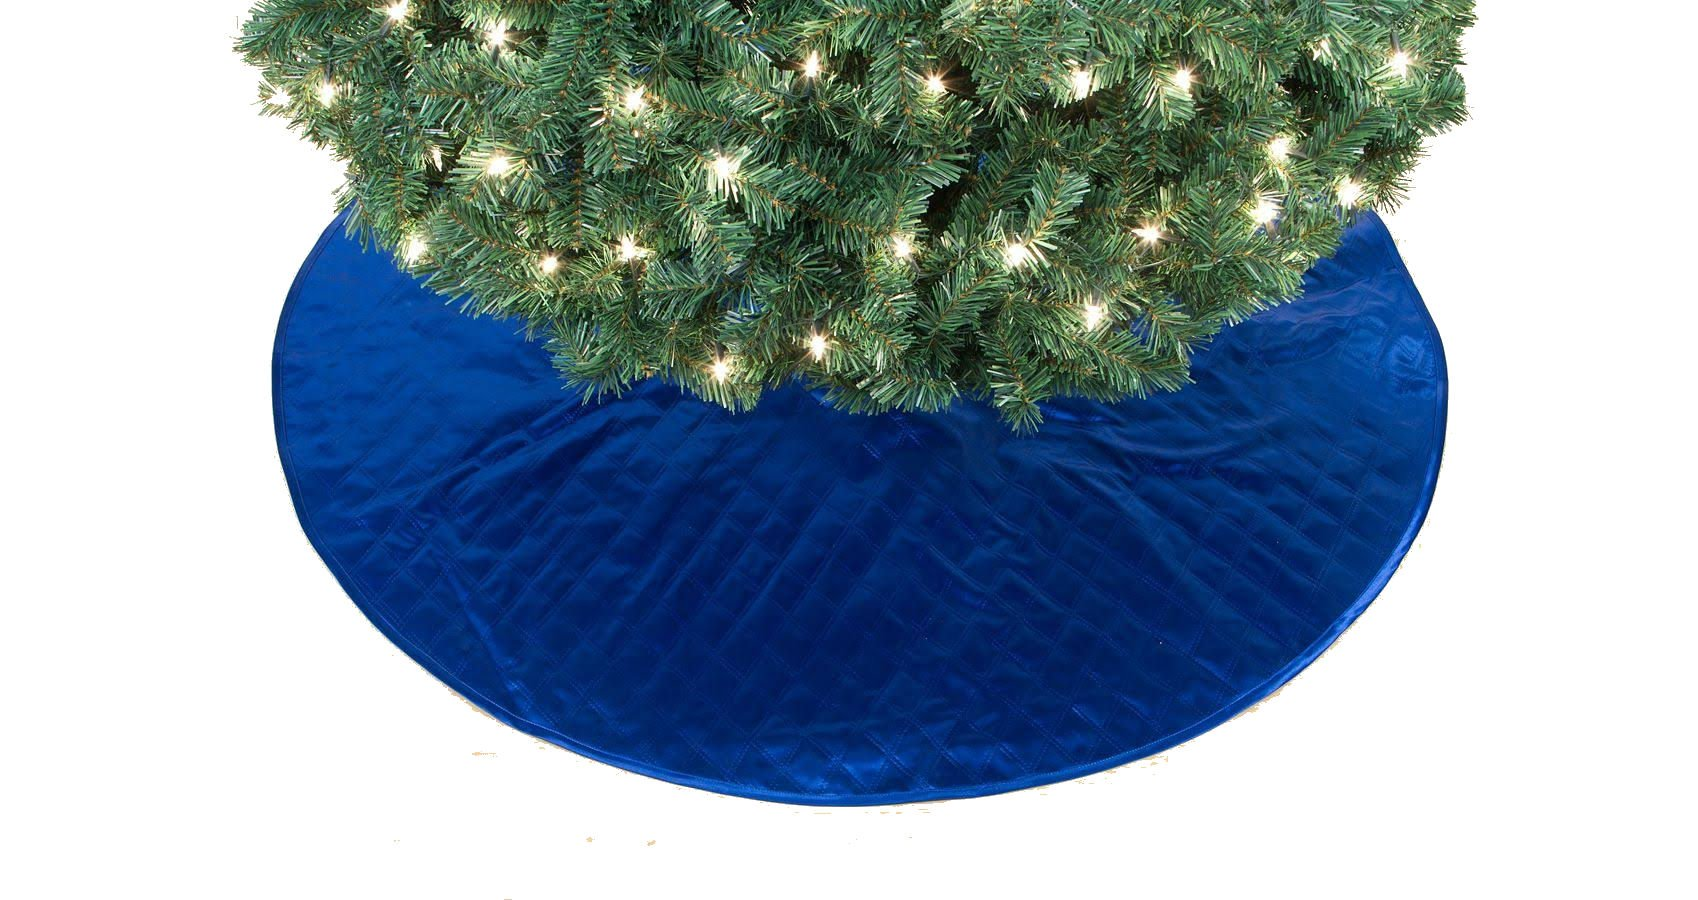 Blue Satiny Quilted Fabric Christmas Holiday Tree Skirt 48 Inch